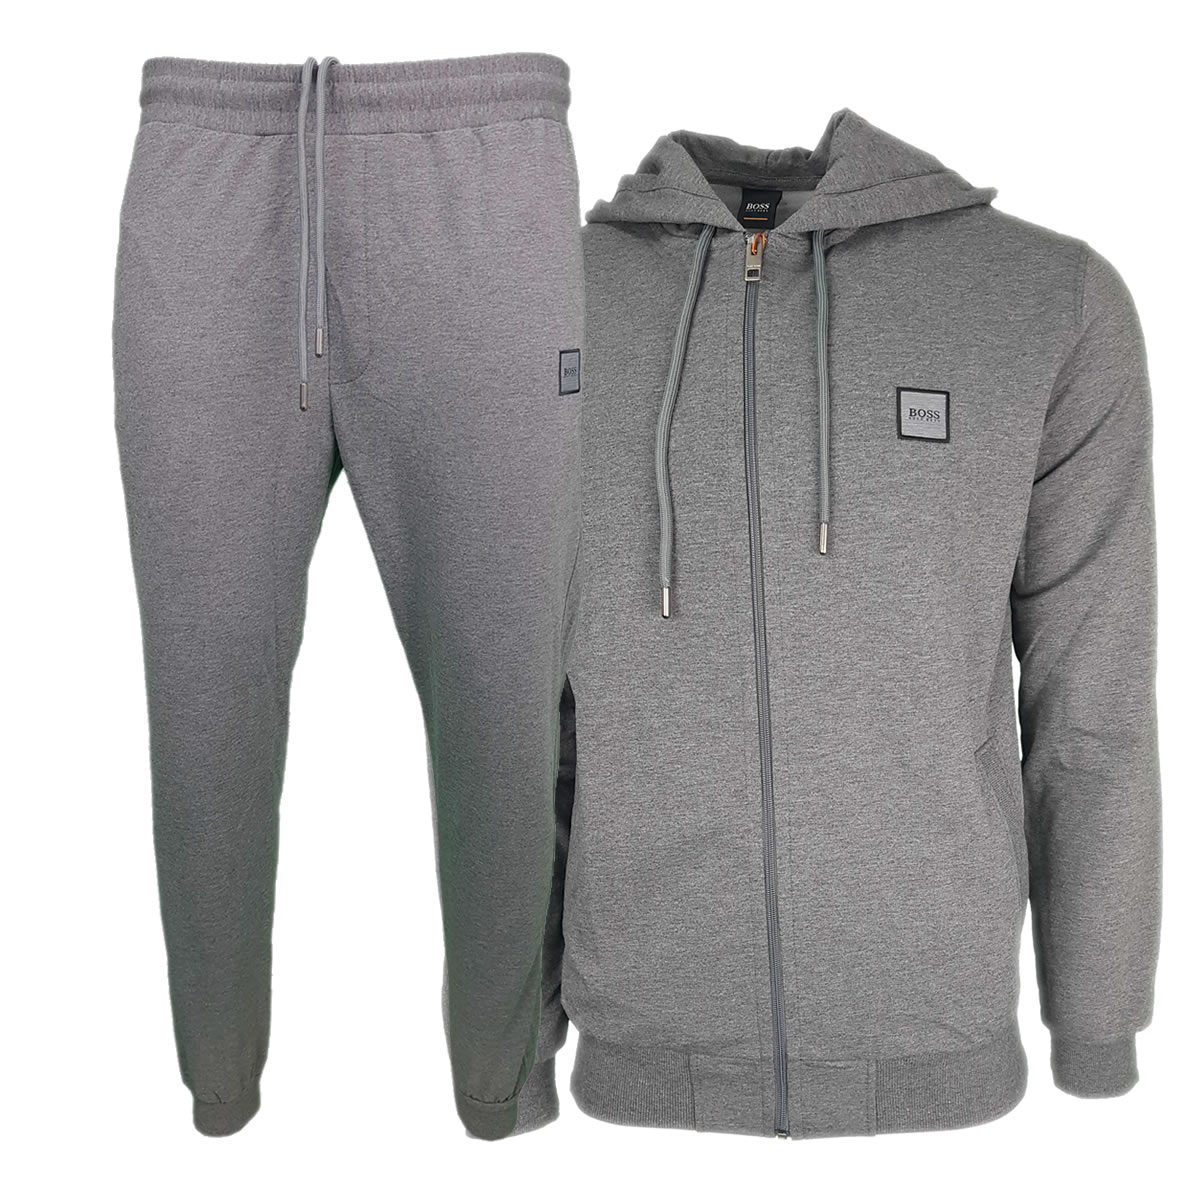 de0162648 Hugo Boss Pavlik Tracksuit Top Jacket & Bottoms with Contrast Logo in Dark  Grey